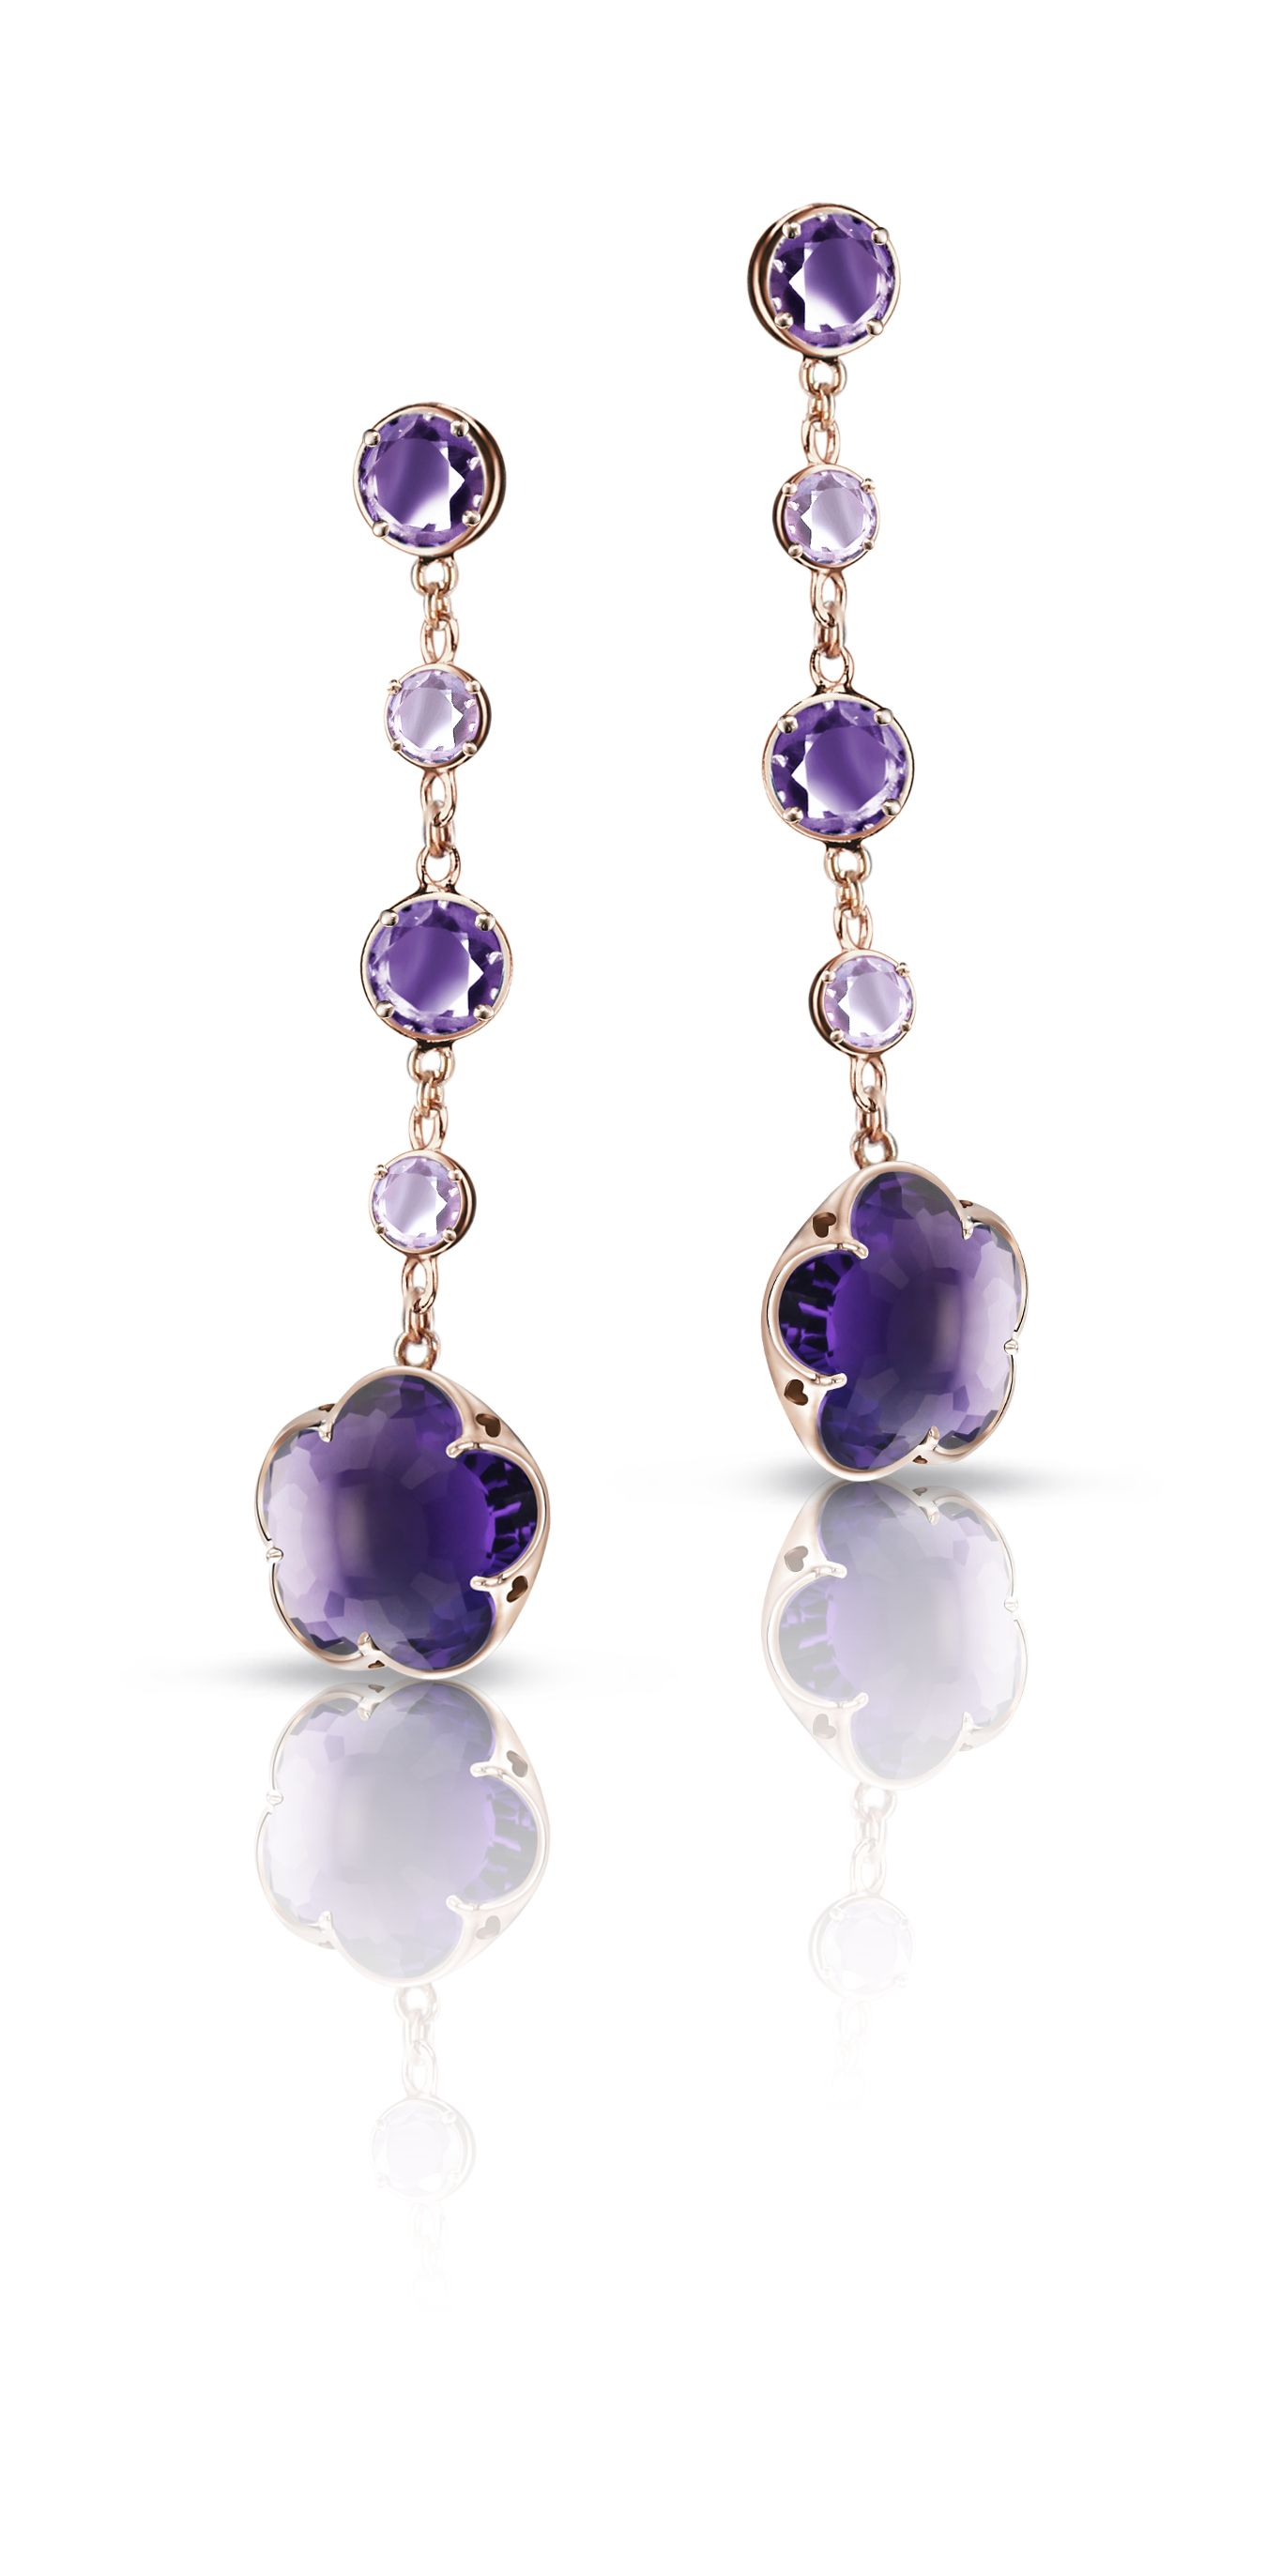 stone products earrings charming amethyst laura triangle leah